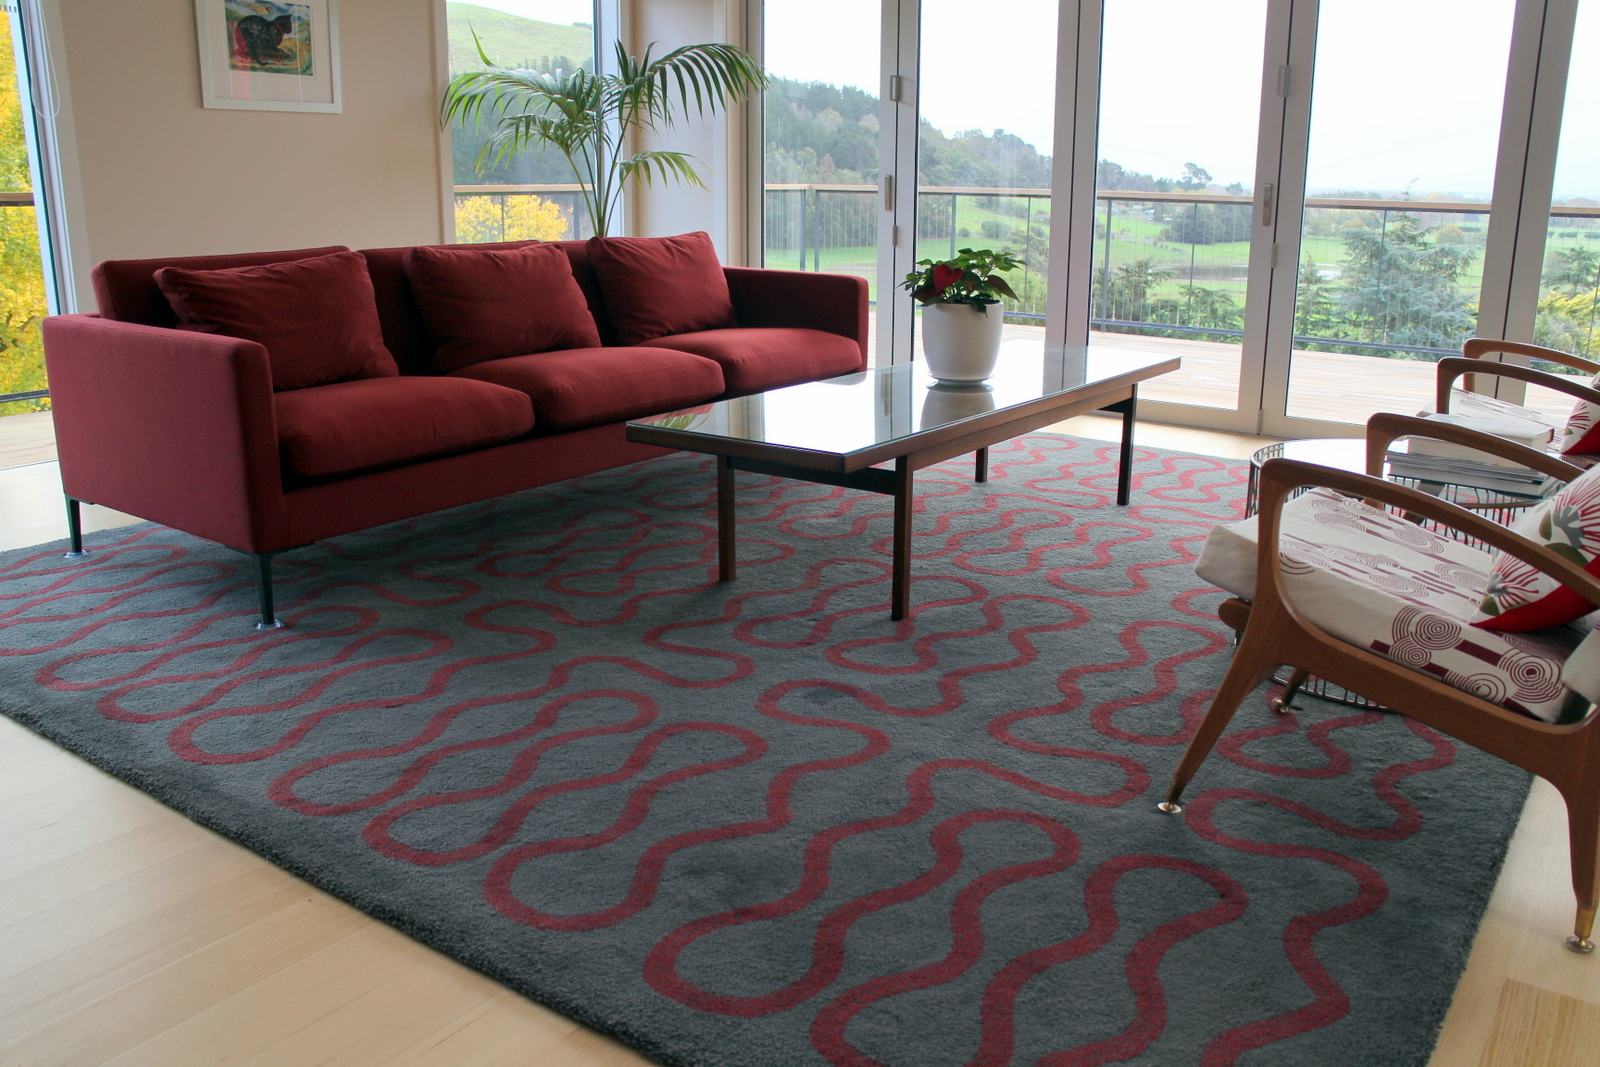 Infinity Rug in Grey & Red